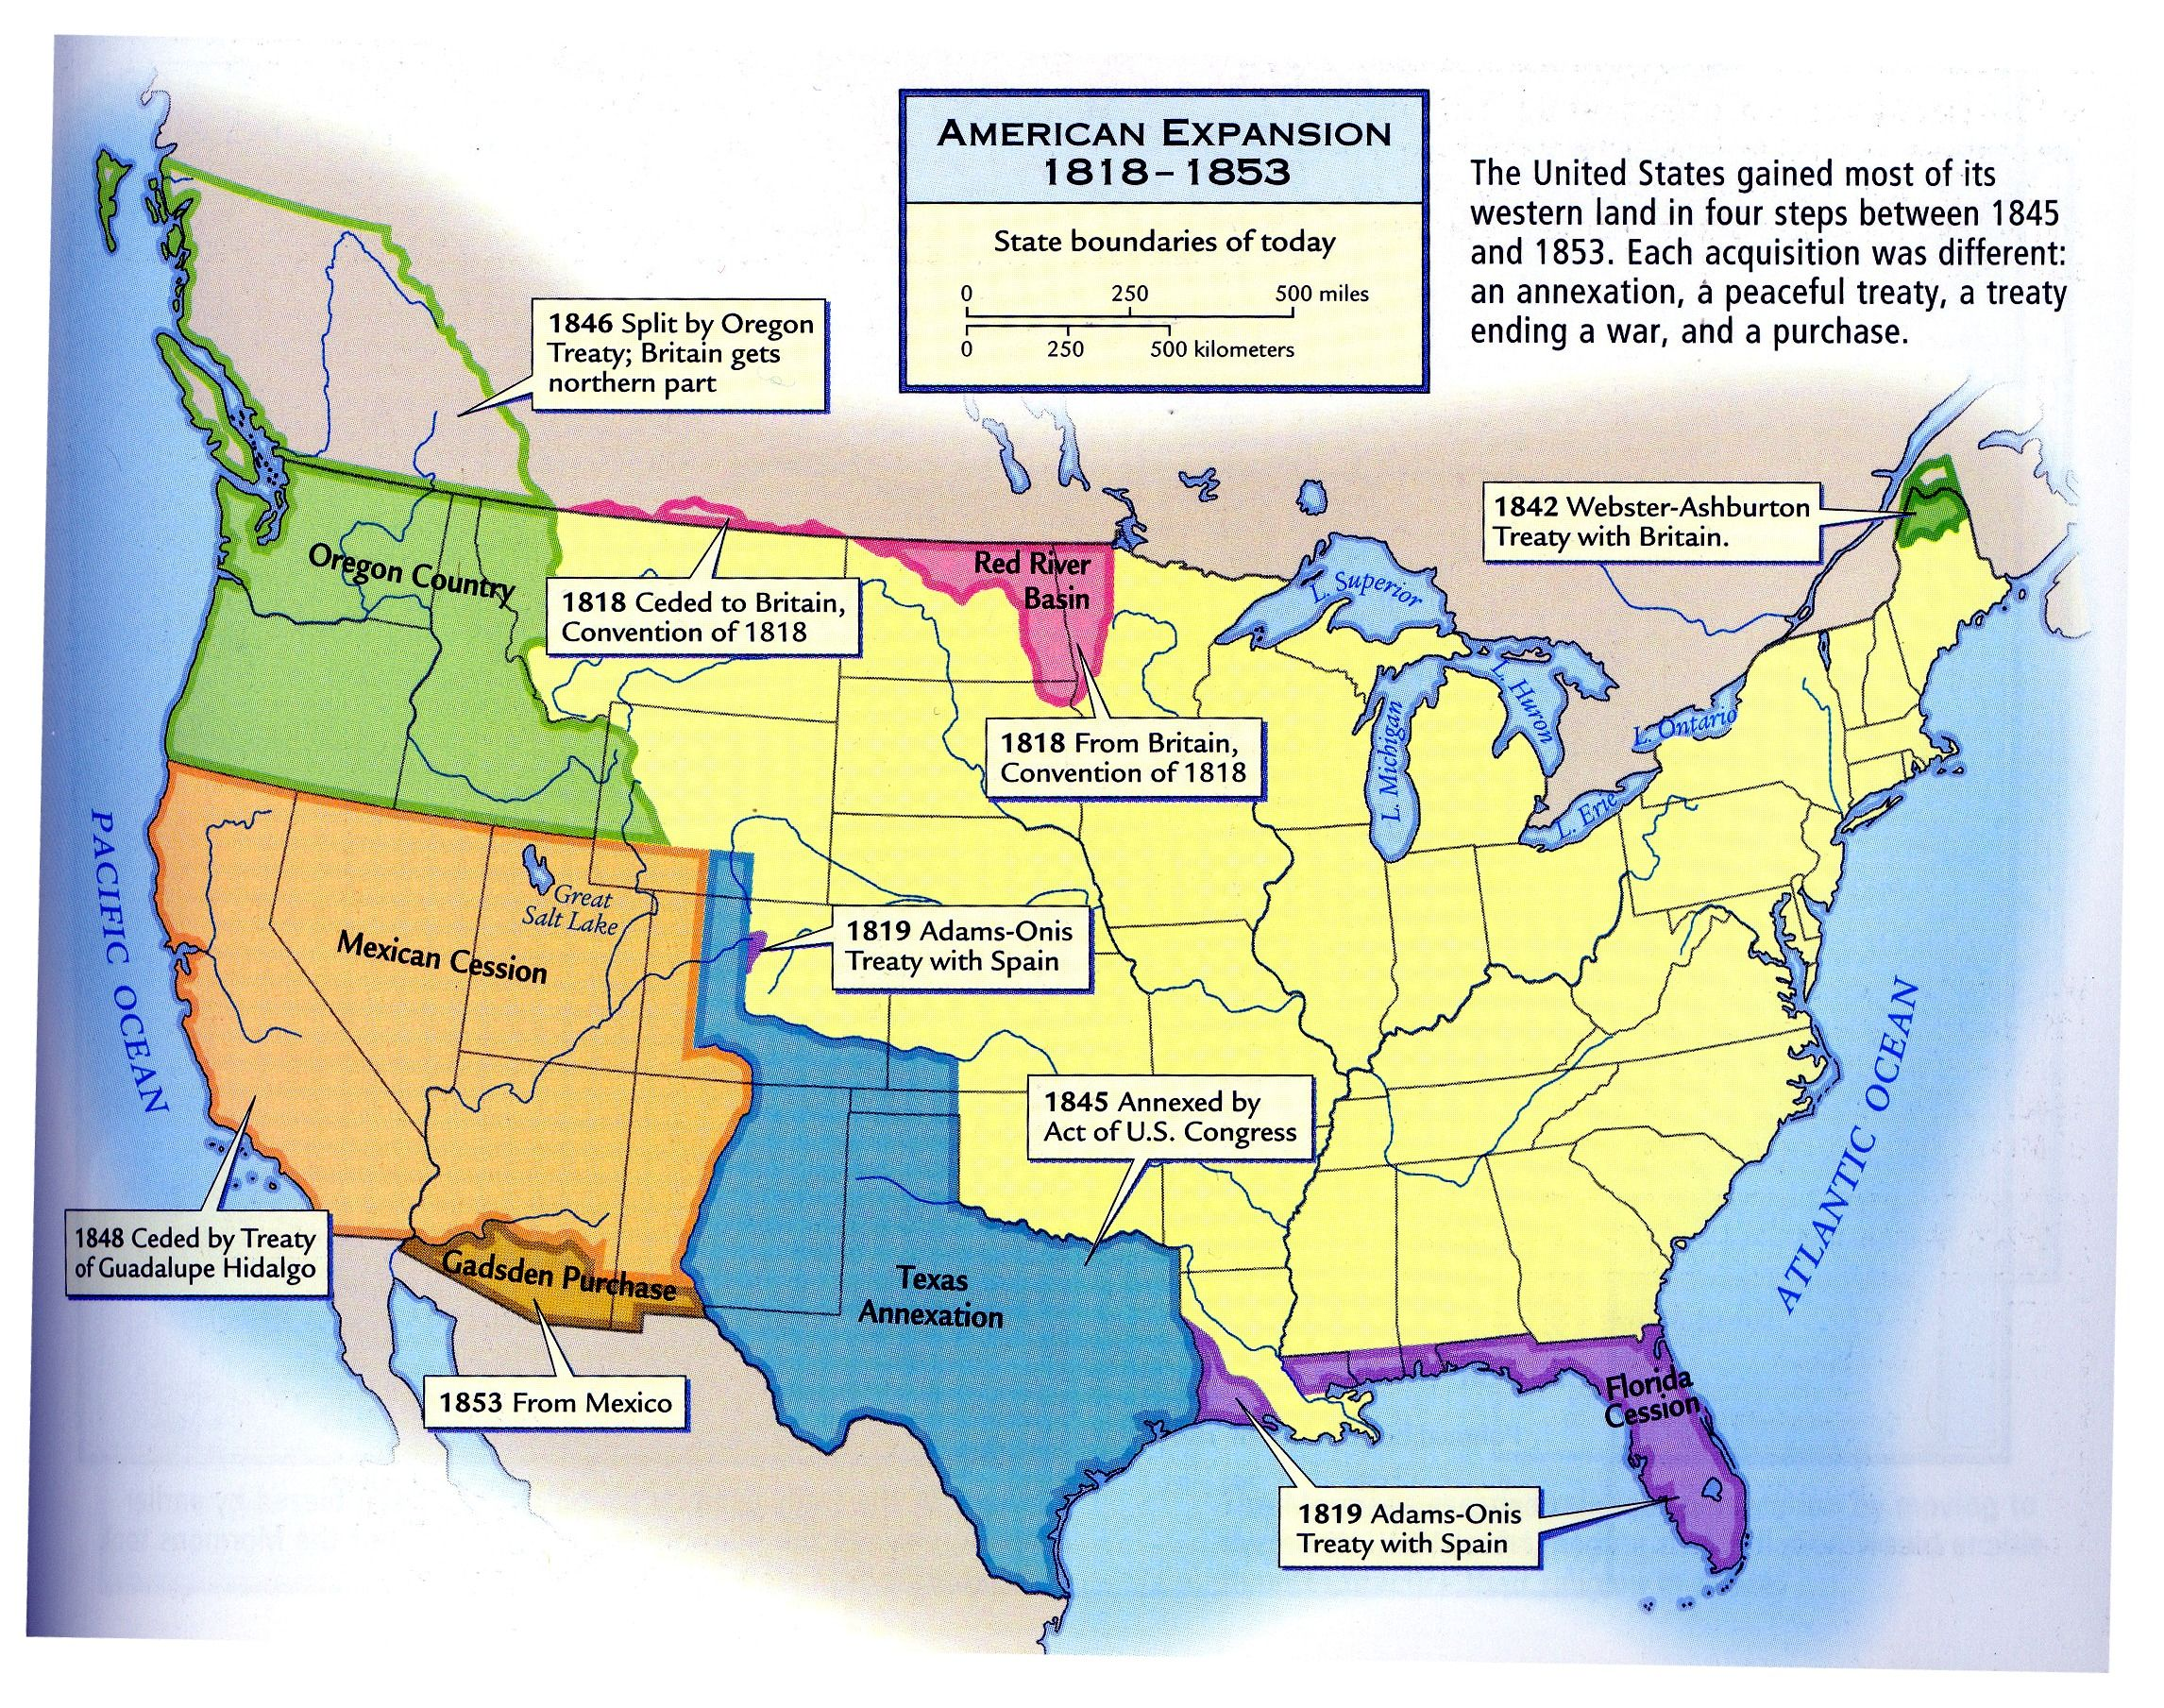 American Expansion Map United States Mappery FTA - Us westward expansion map